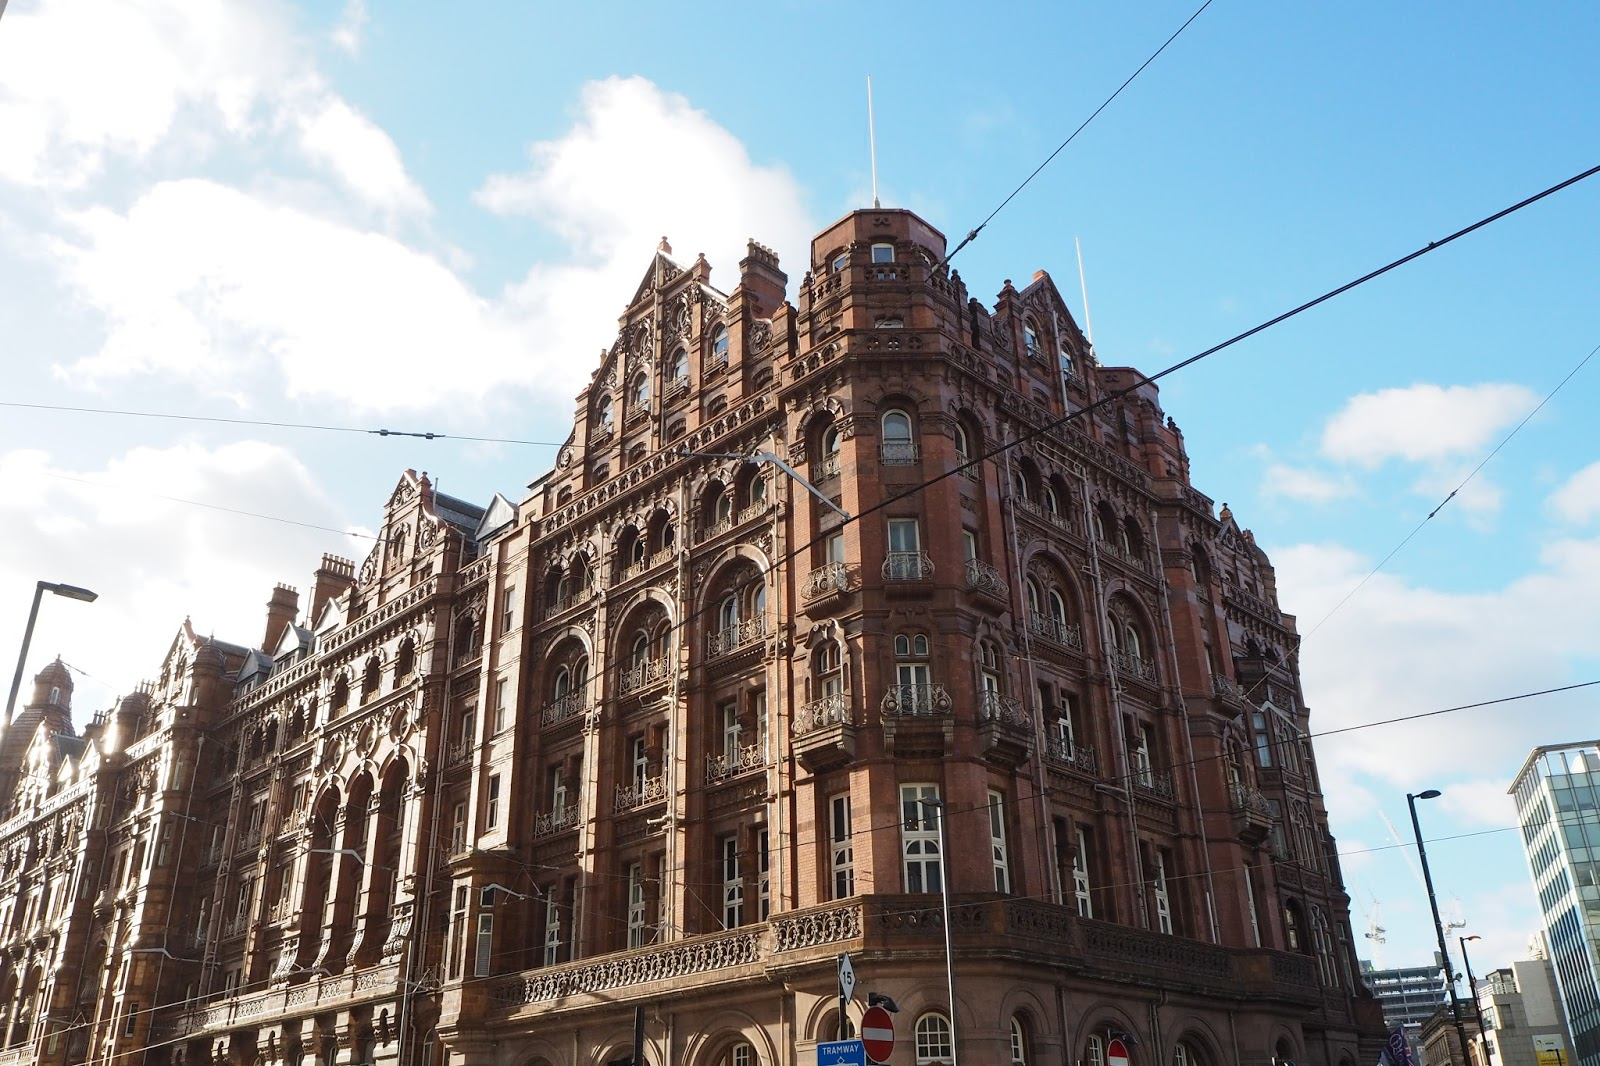 Muslim visitor guide to Manchester, United-kingdom   Halal ...